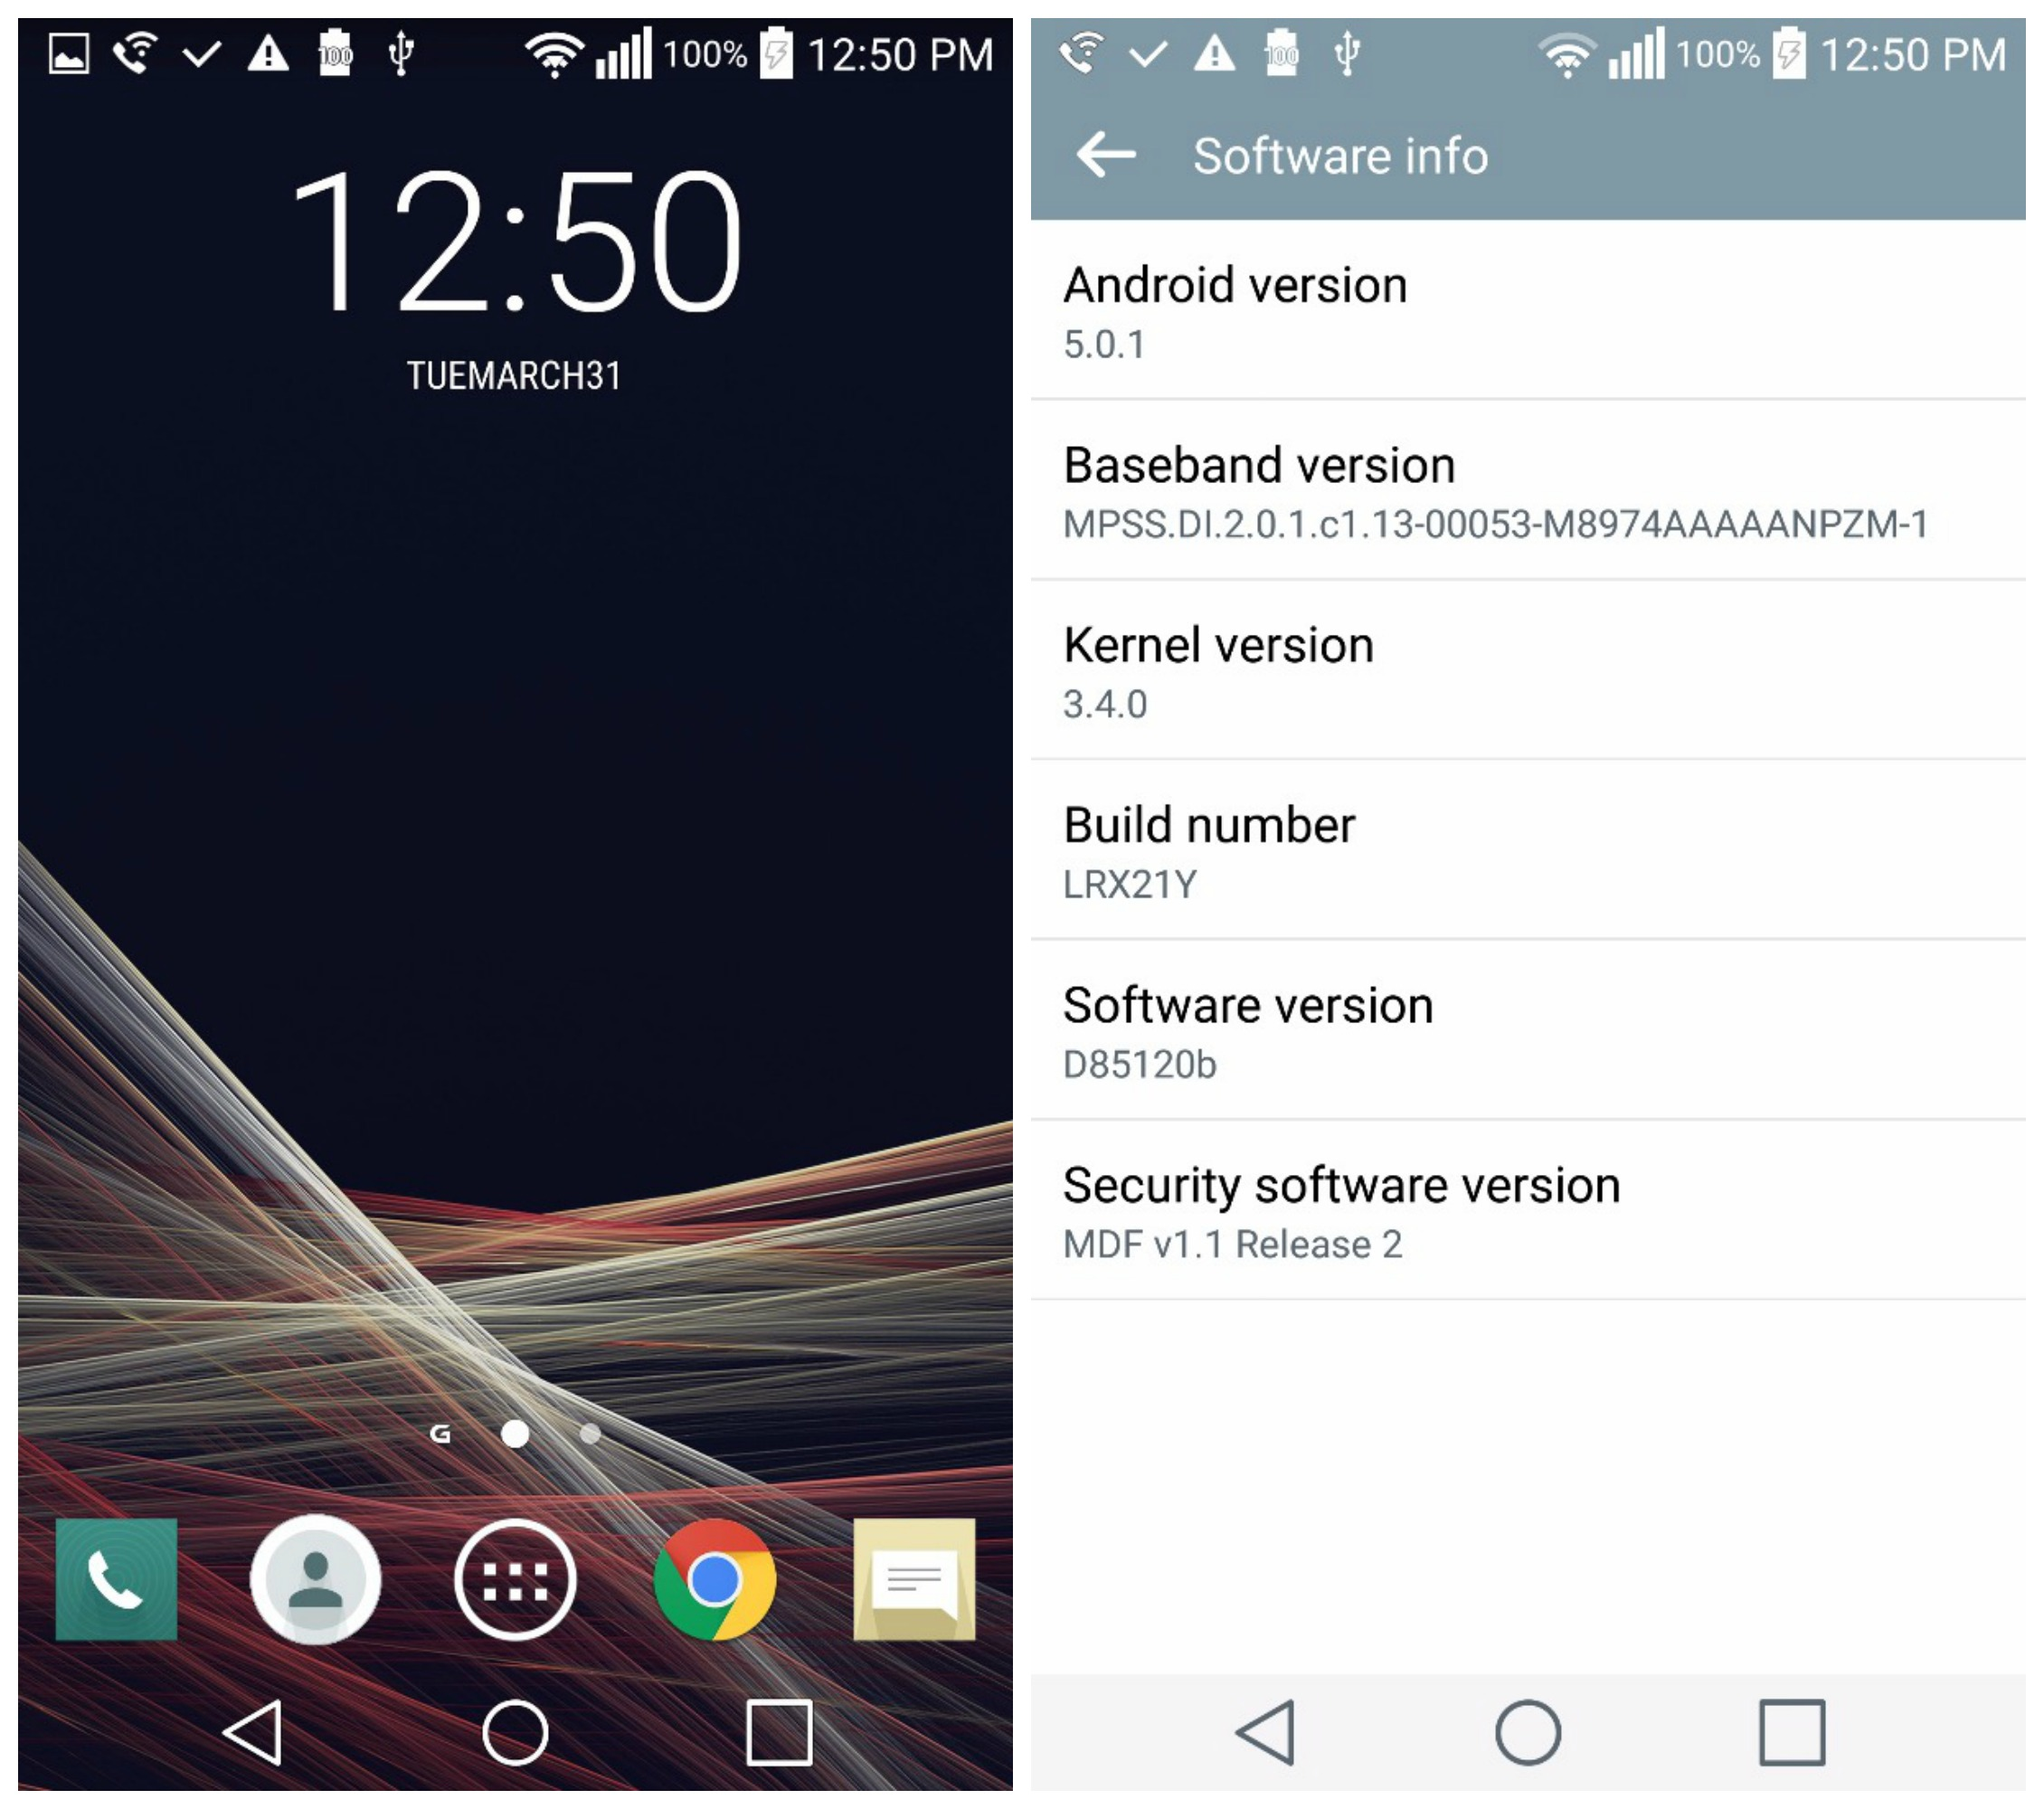 Lg g3 6. 0 marshmallow update manually with lg flash tool youtube.